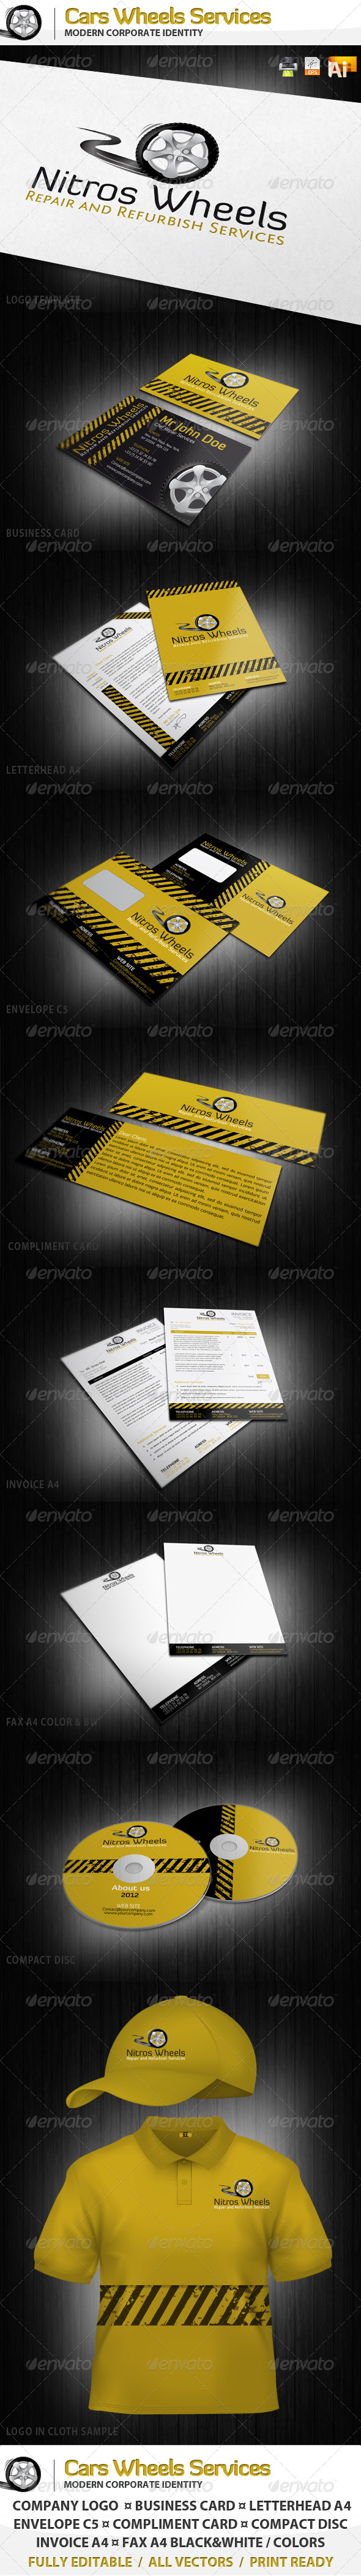 GraphicRiver Cars Wheels Service Corporate Identity and Logo 1264680